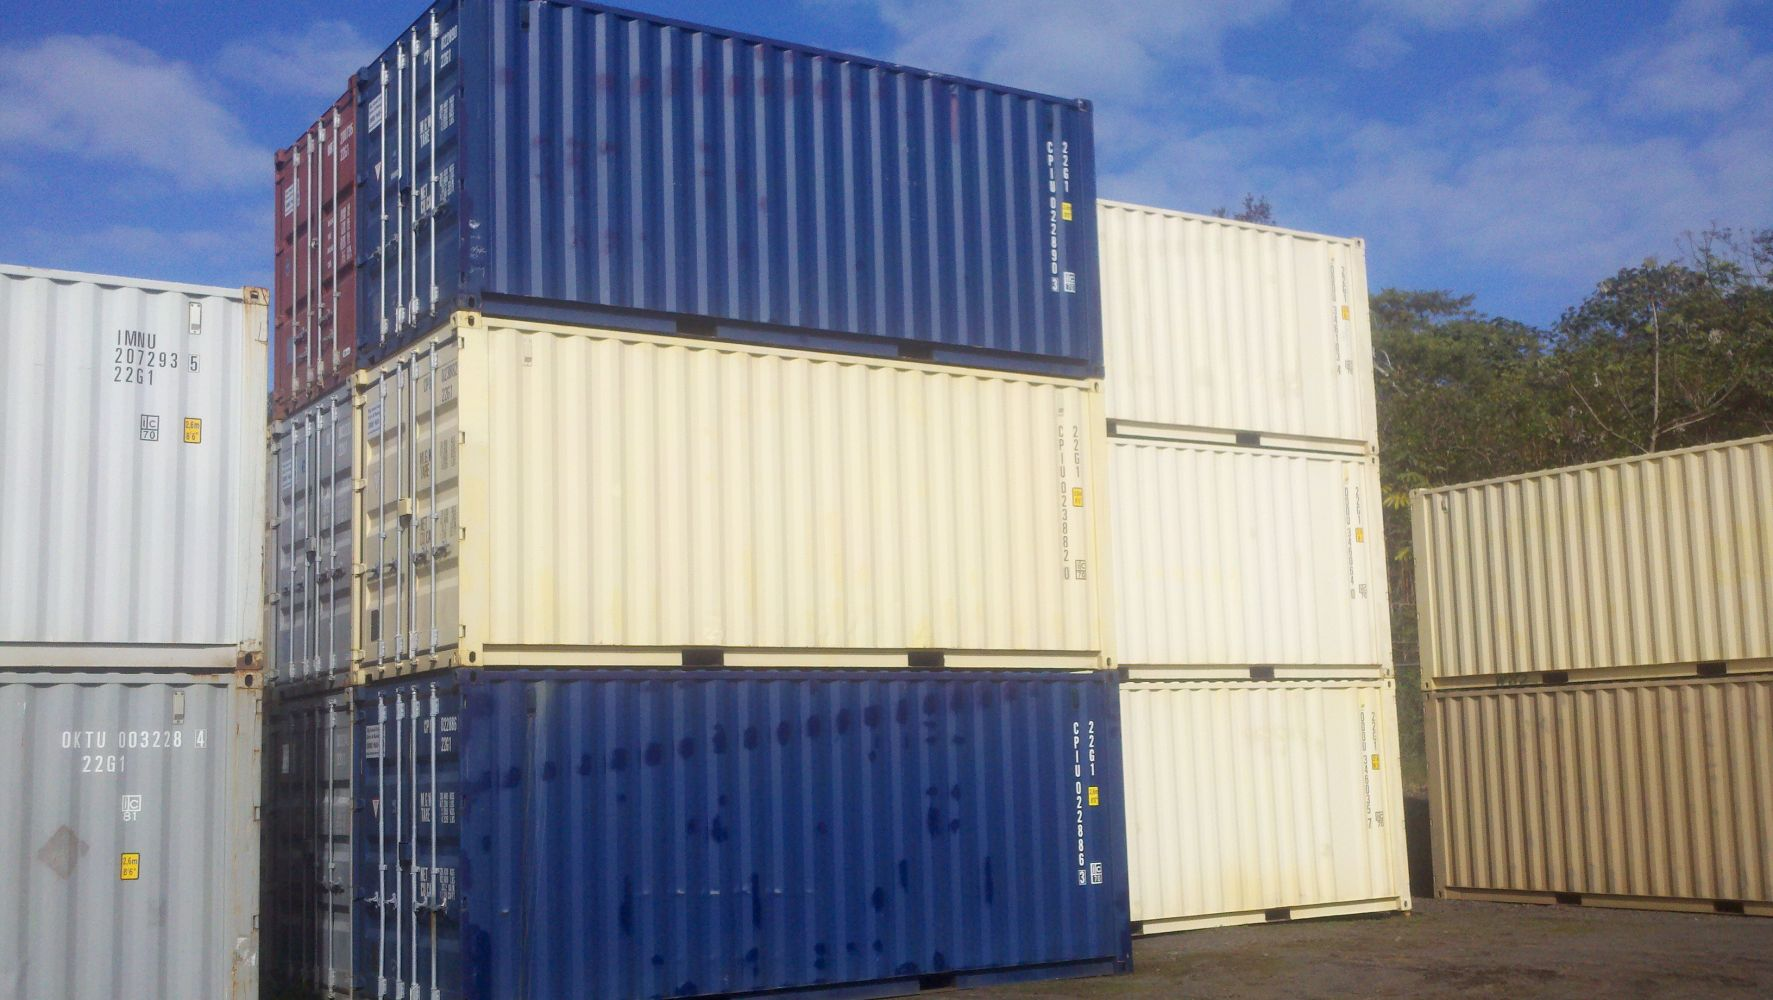 newer model, clean, dry and secure containers in Kea'au, HI